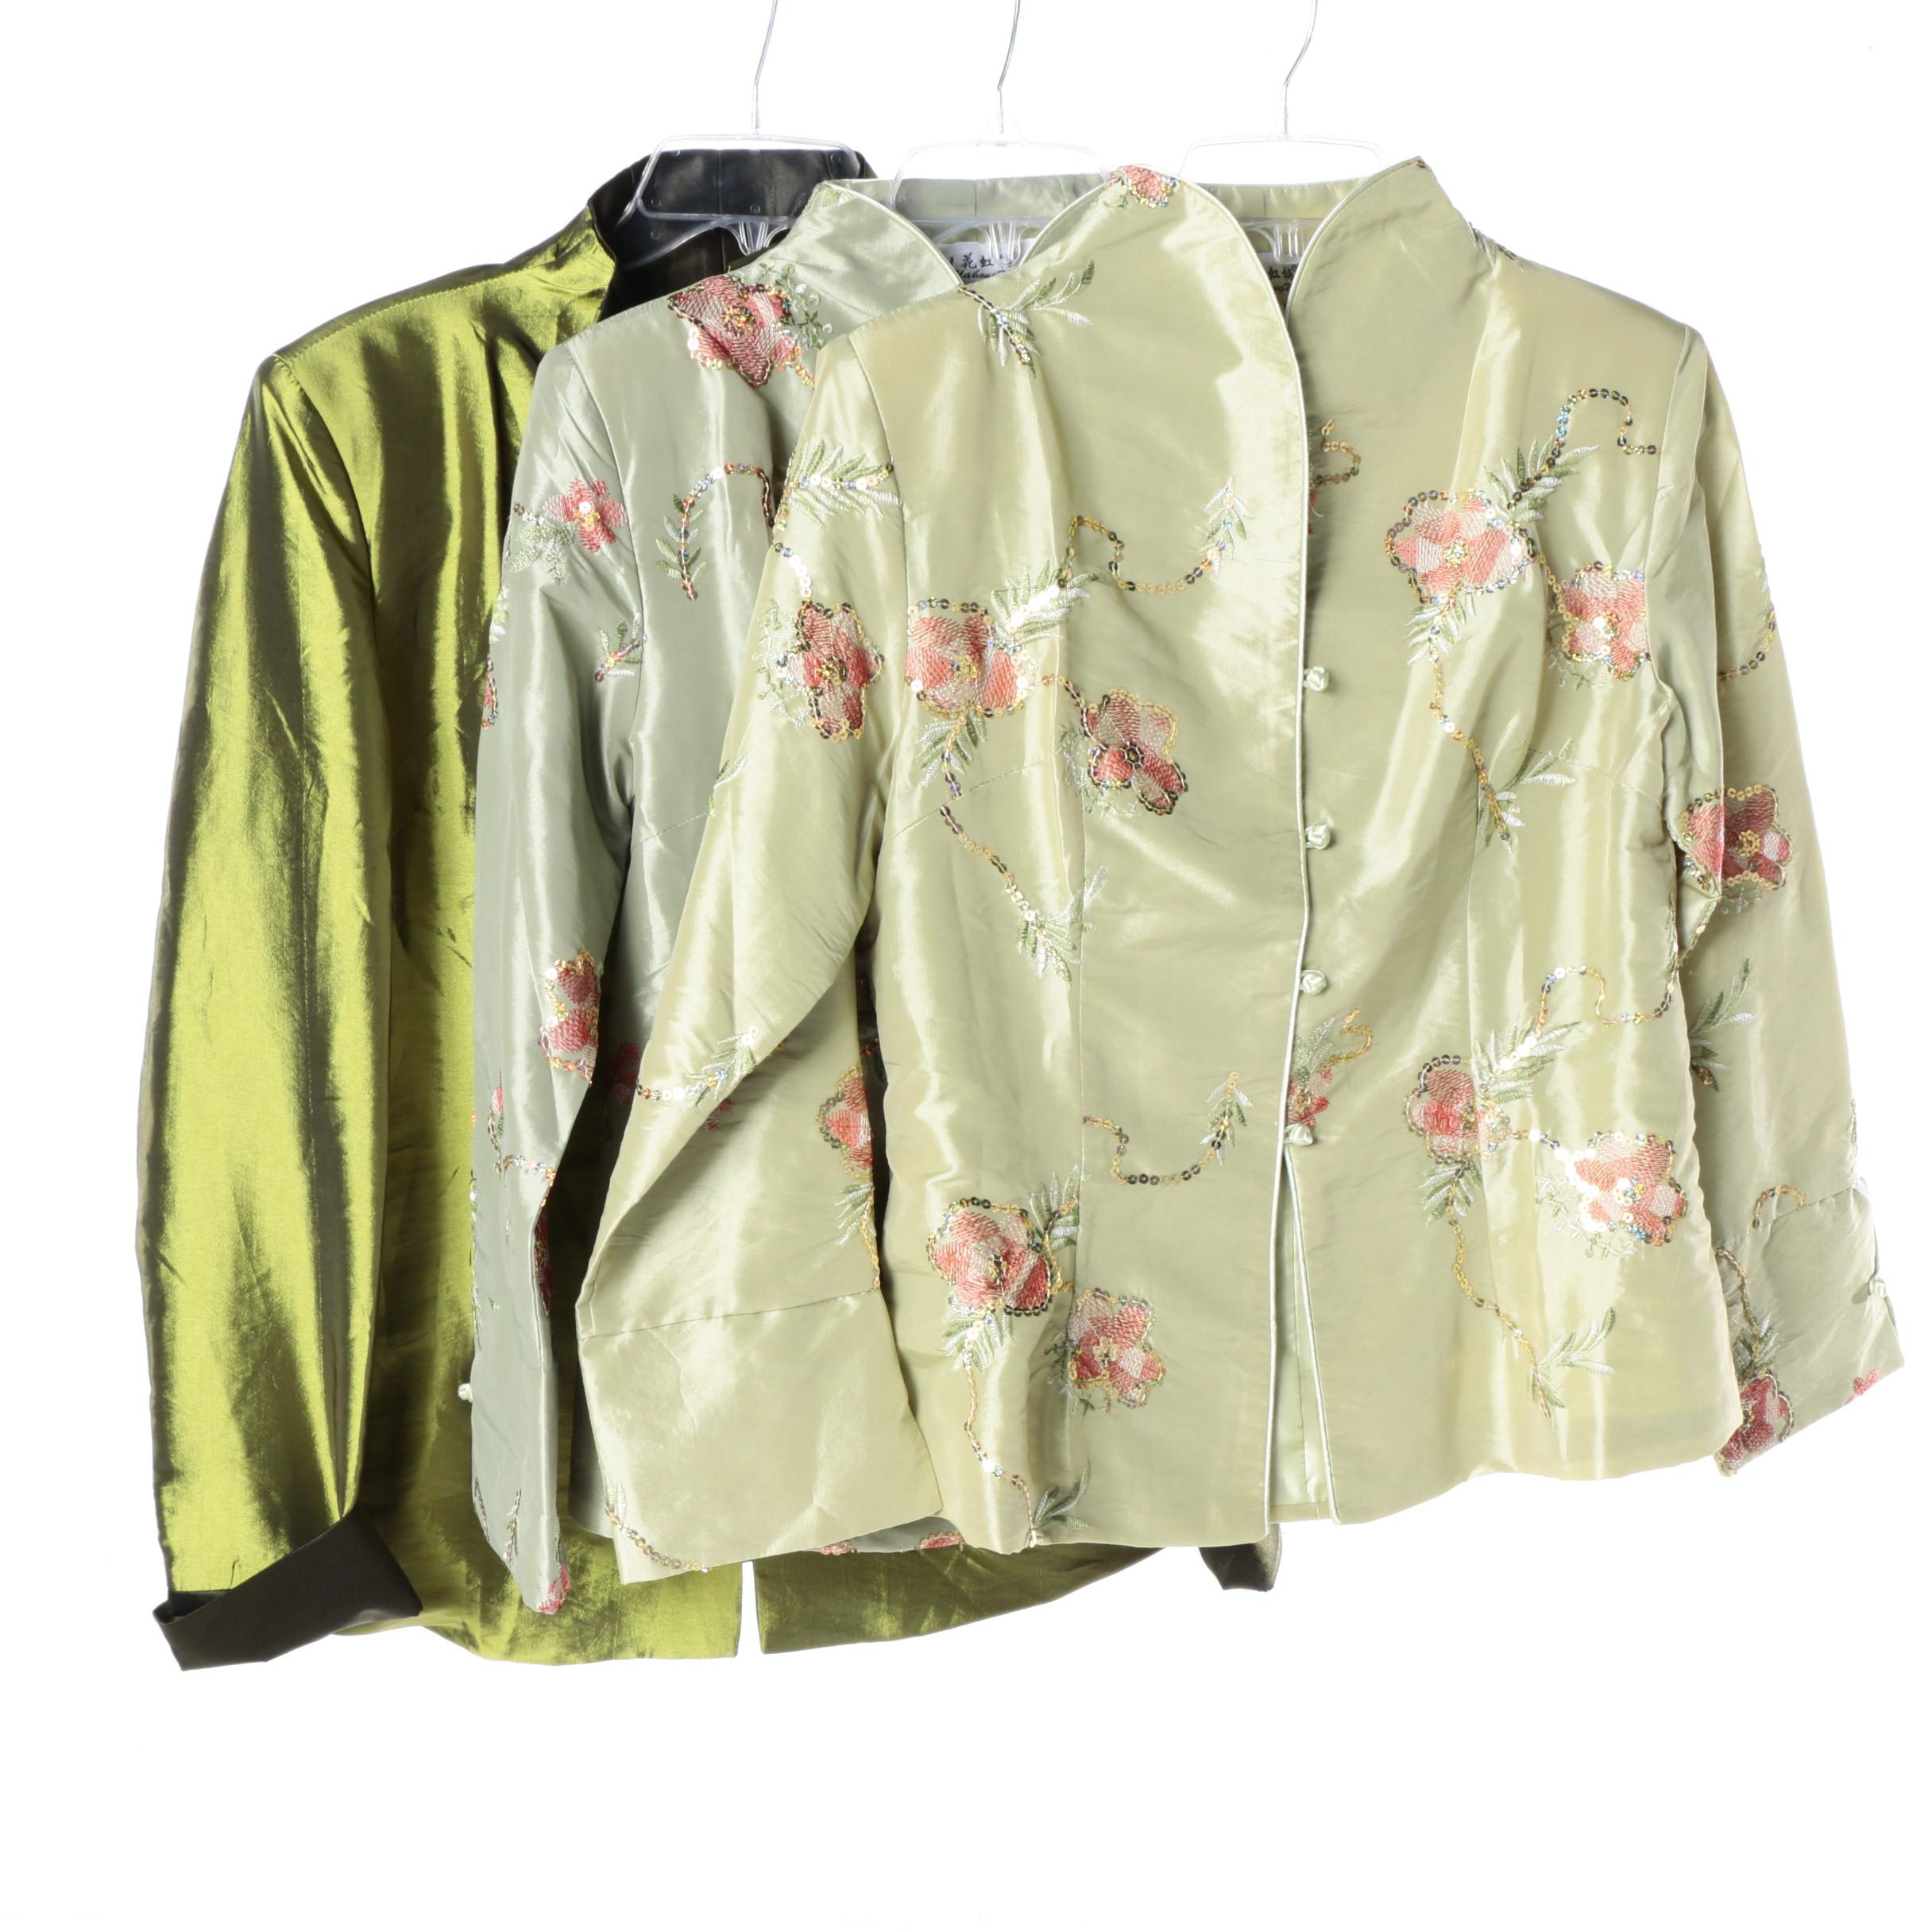 Women's Asian Inspired Brocade Style Jackets